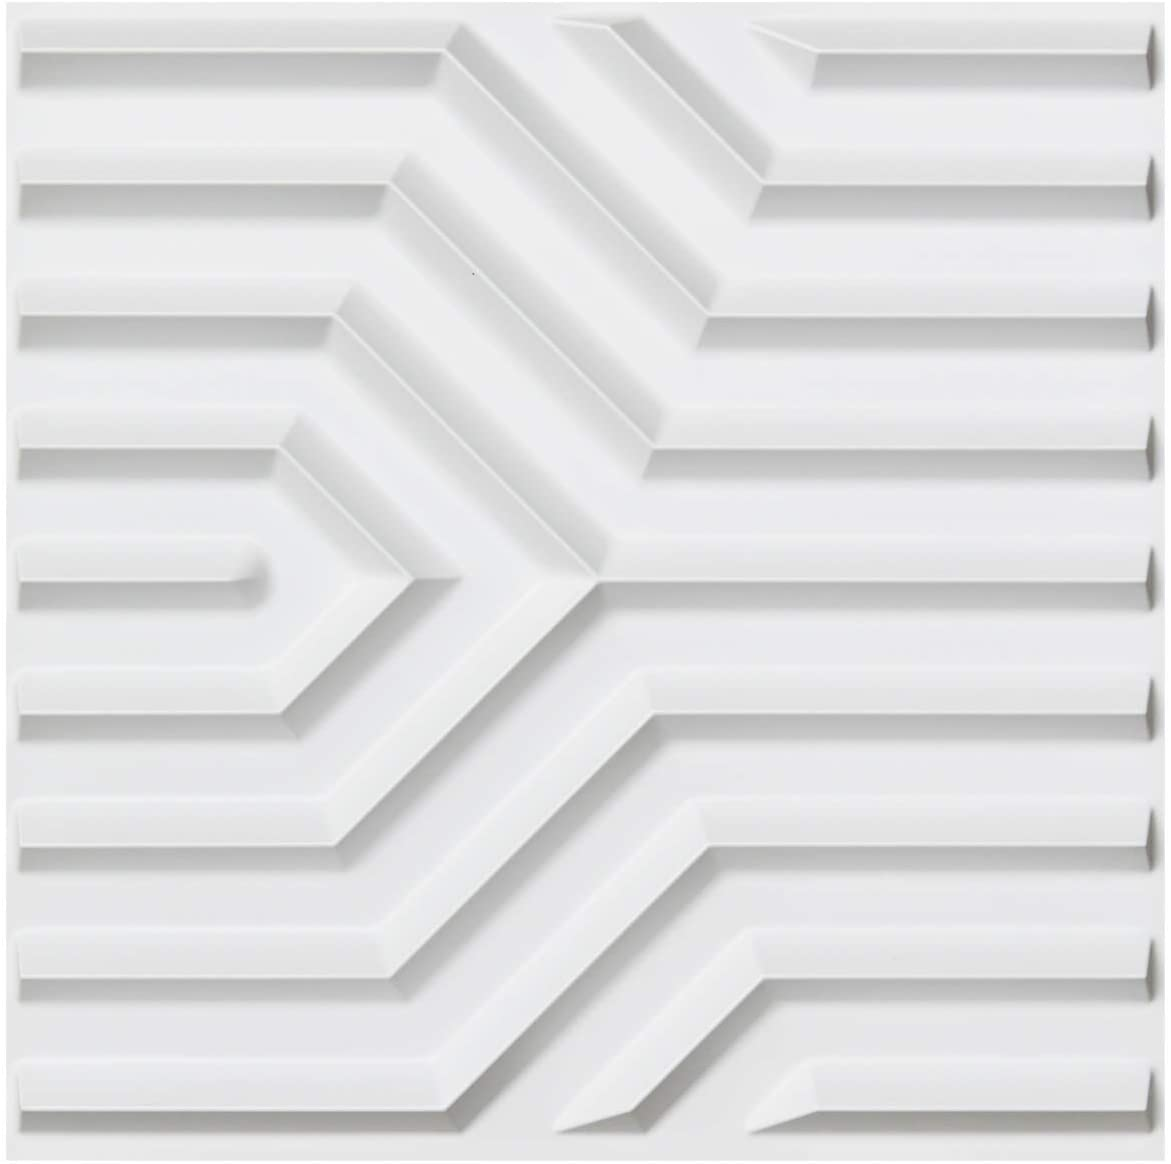 A10043 - Plastic 3D Wall Panel PVC Wall Design, White, 12 Tiles 32 SF